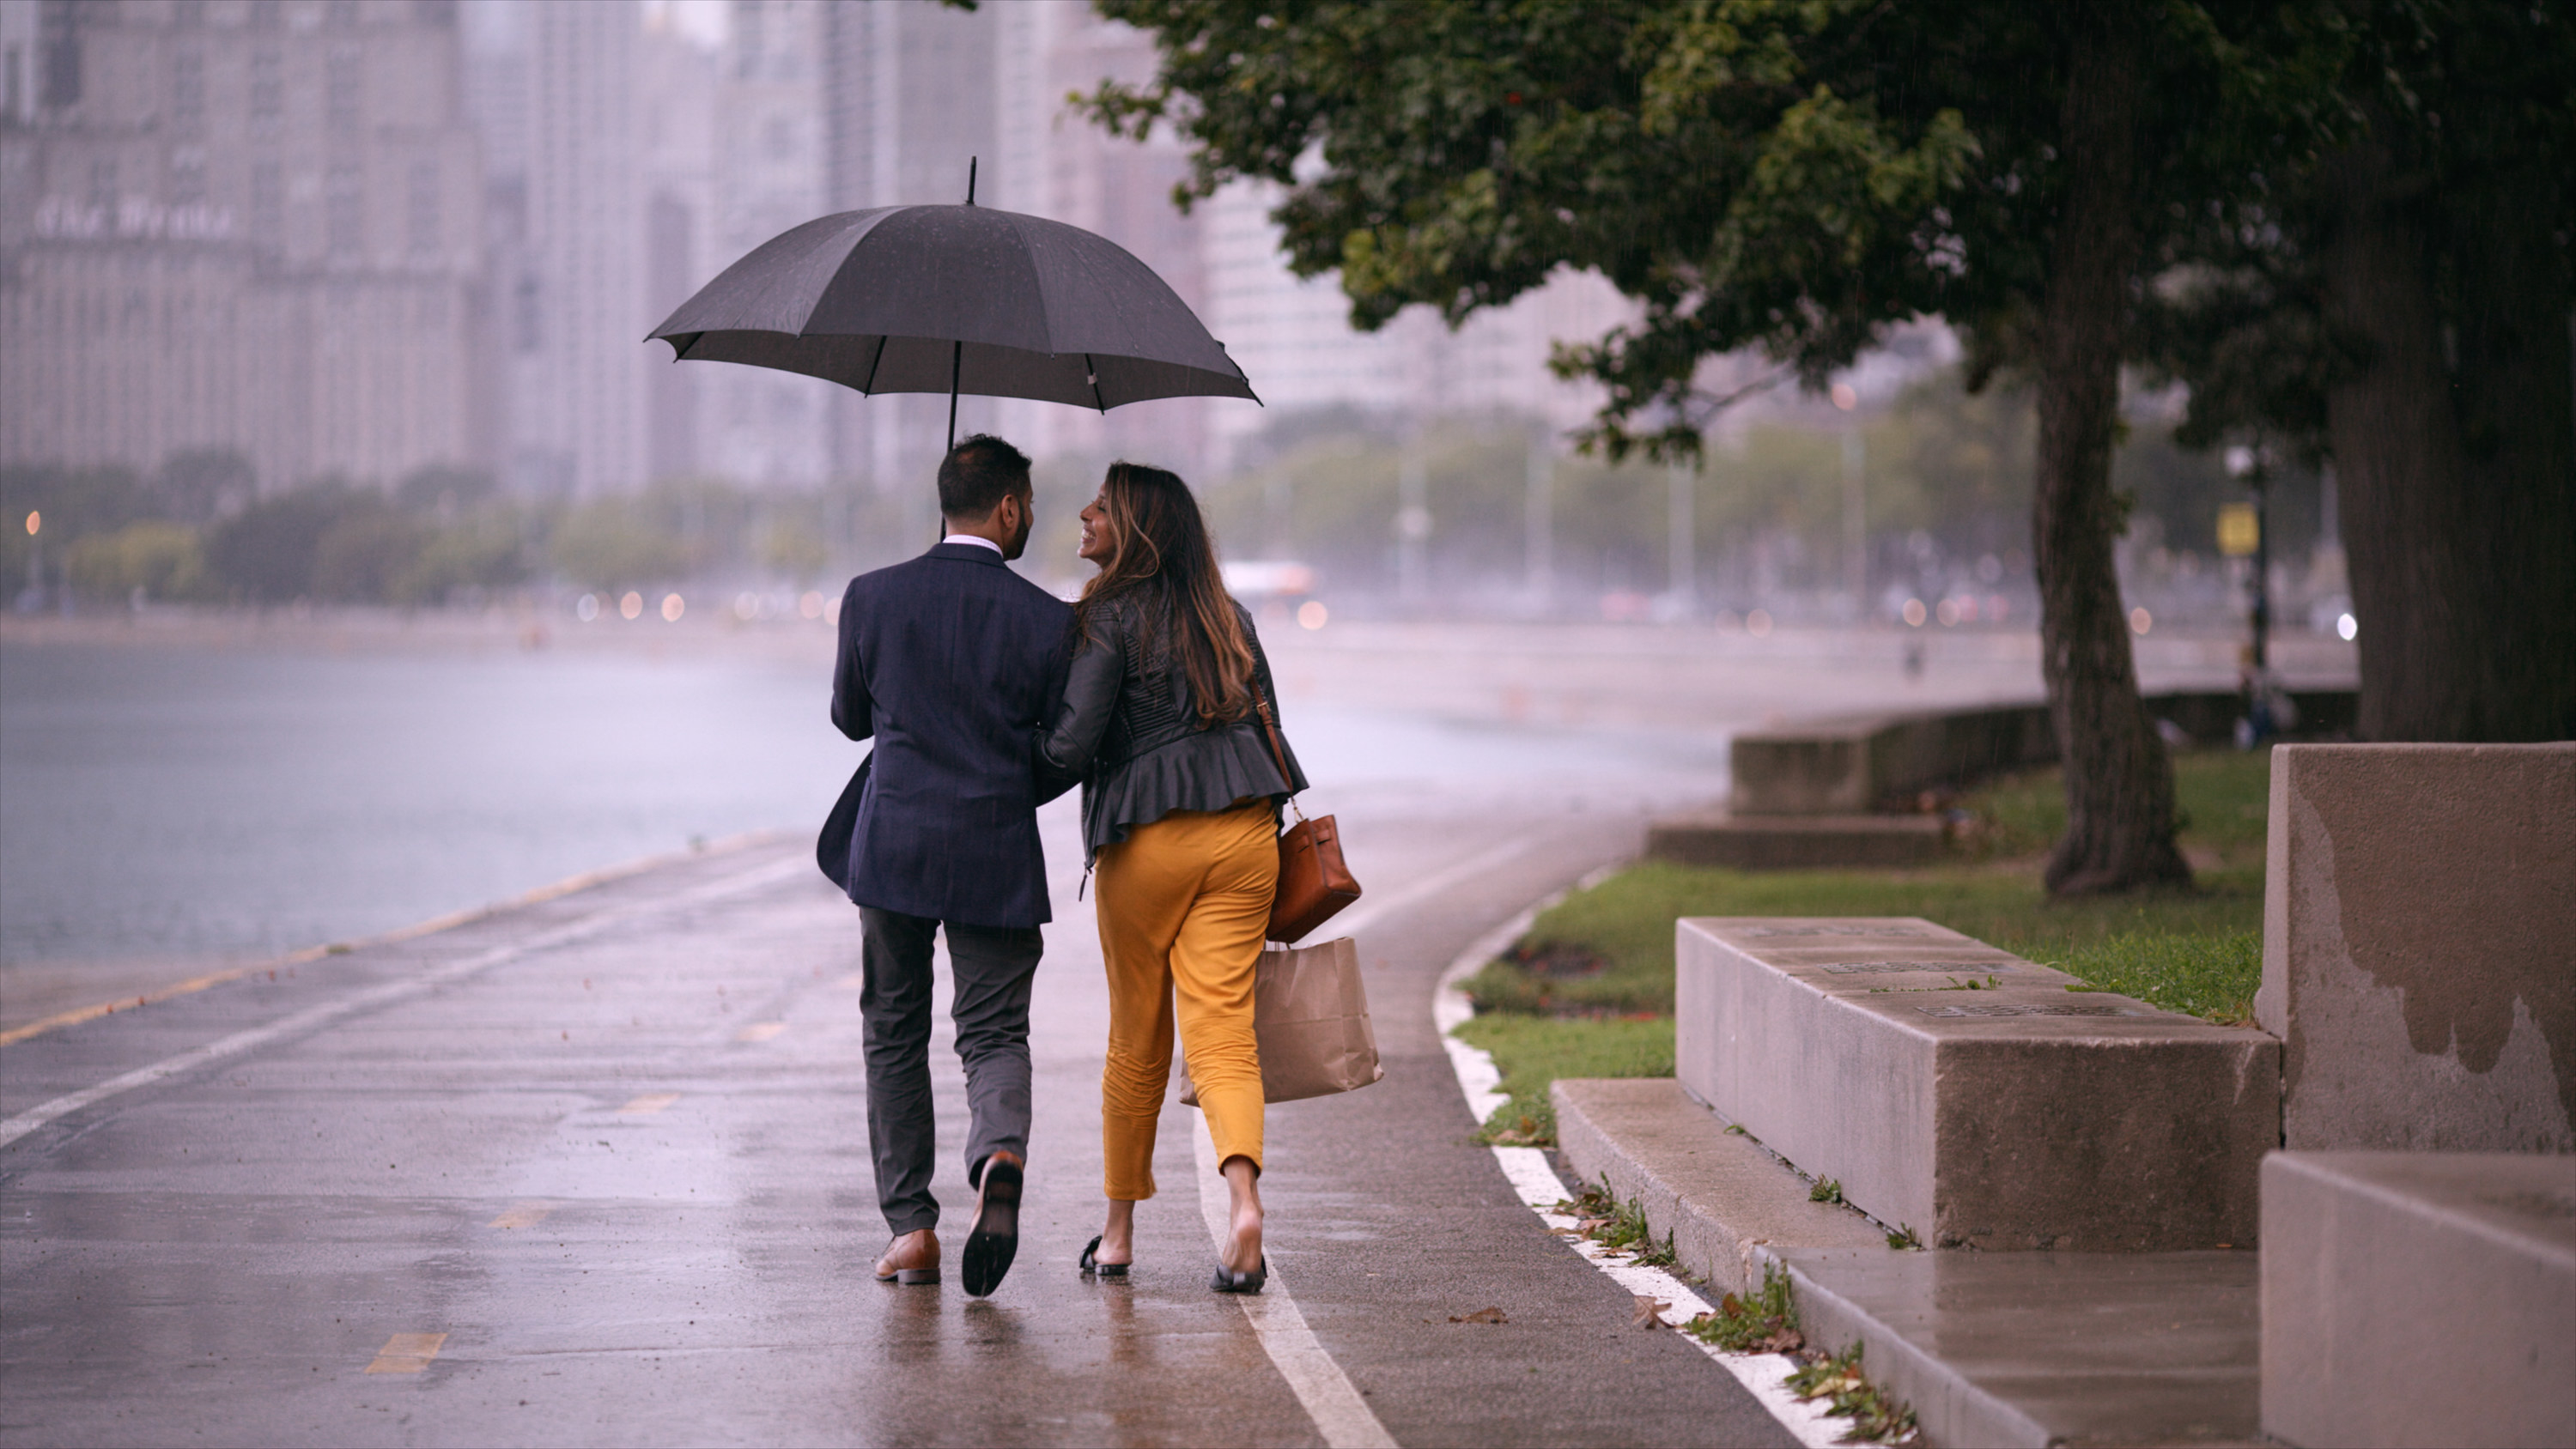 Nadia and Shekar walking in the rain on a date